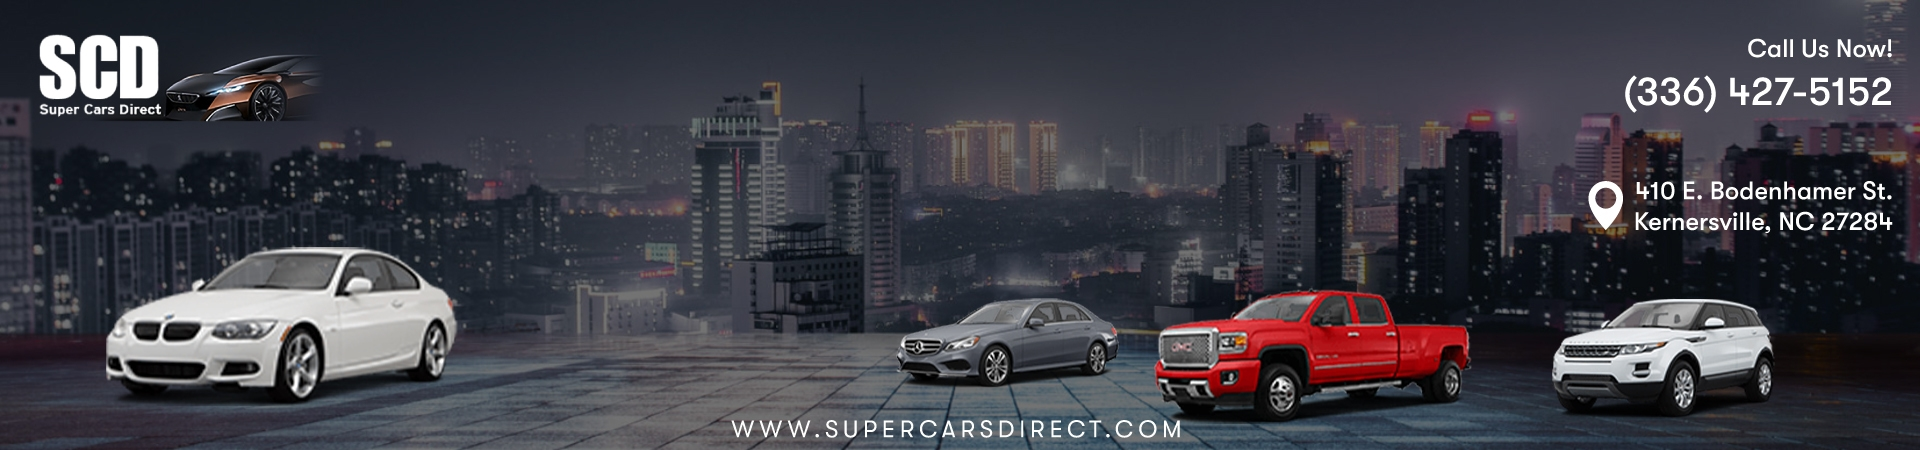 (@supercarsdirect) Cover Image